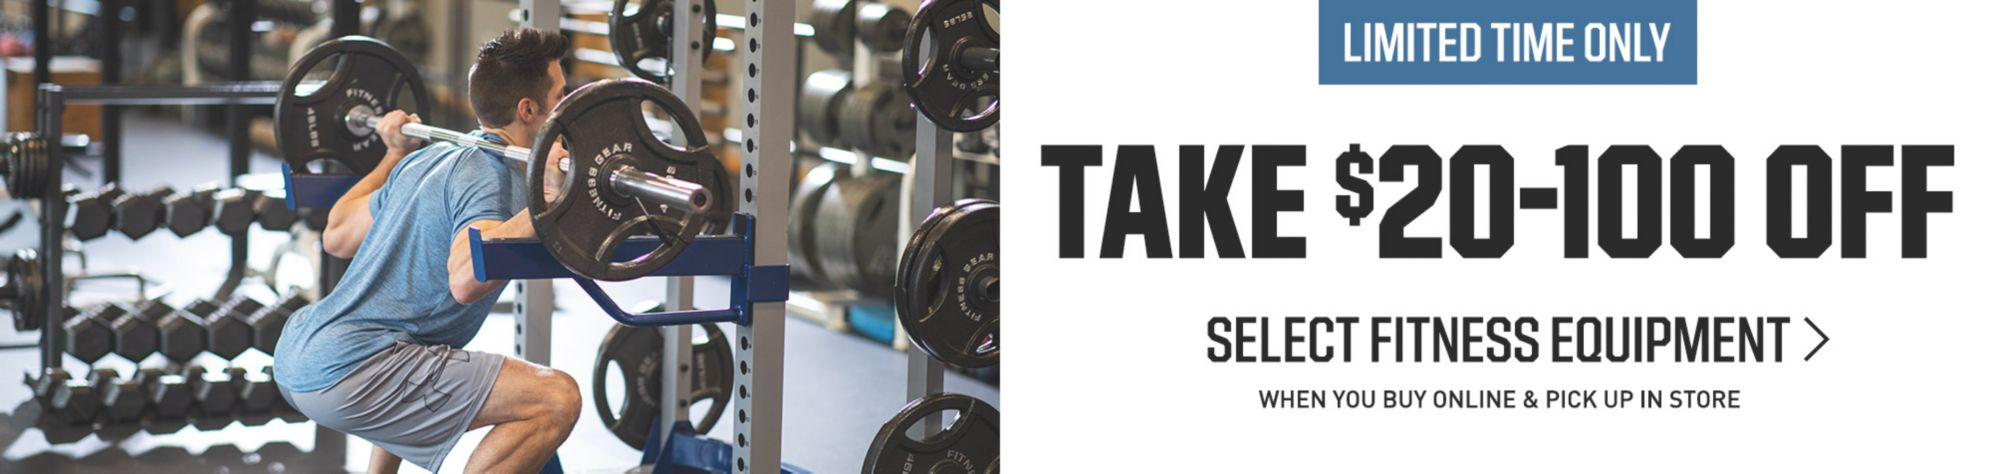 Take $20-100 Off Select Fitness Equipment When You Buy Online Pick Up In Store